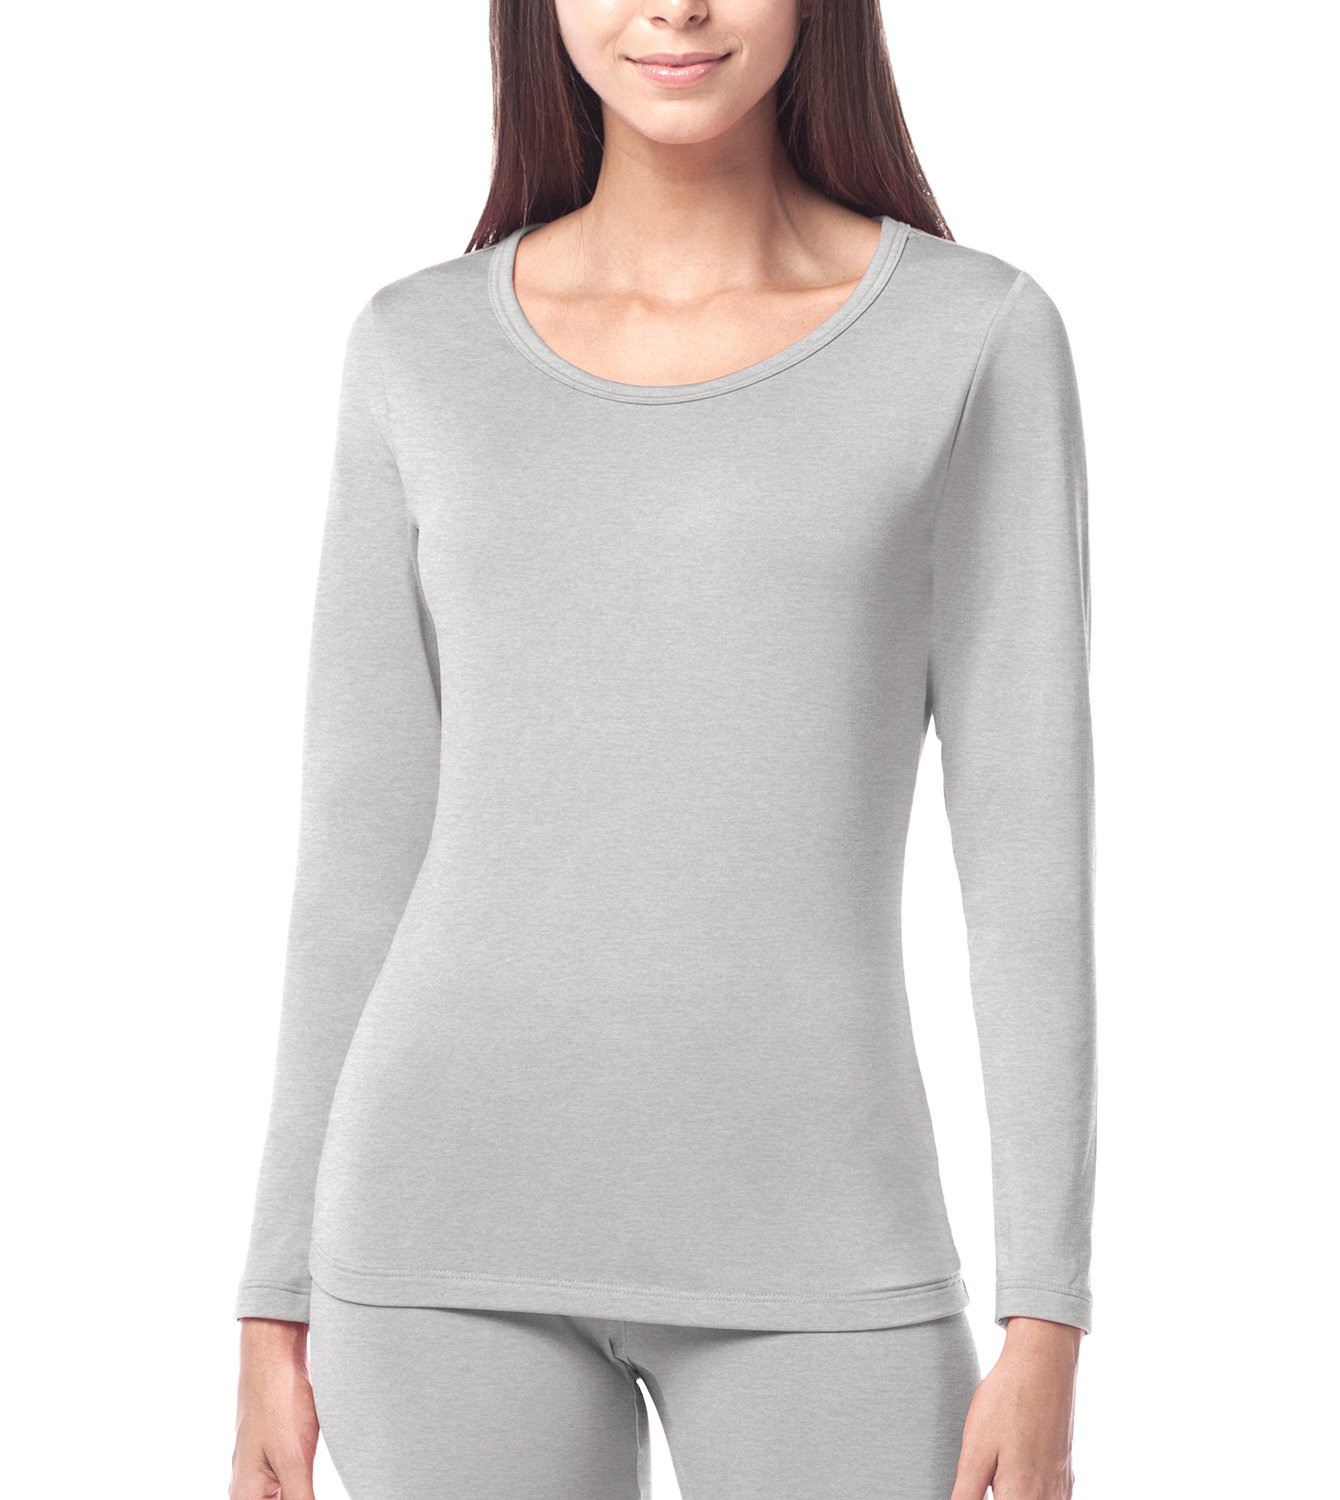 LAPASA Women's Lightweight Thermal Underwear Top Fleece Lined Base Layer Long Sleeve Shirt L15 (Grey, Medium) by LAPASA (Image #1)